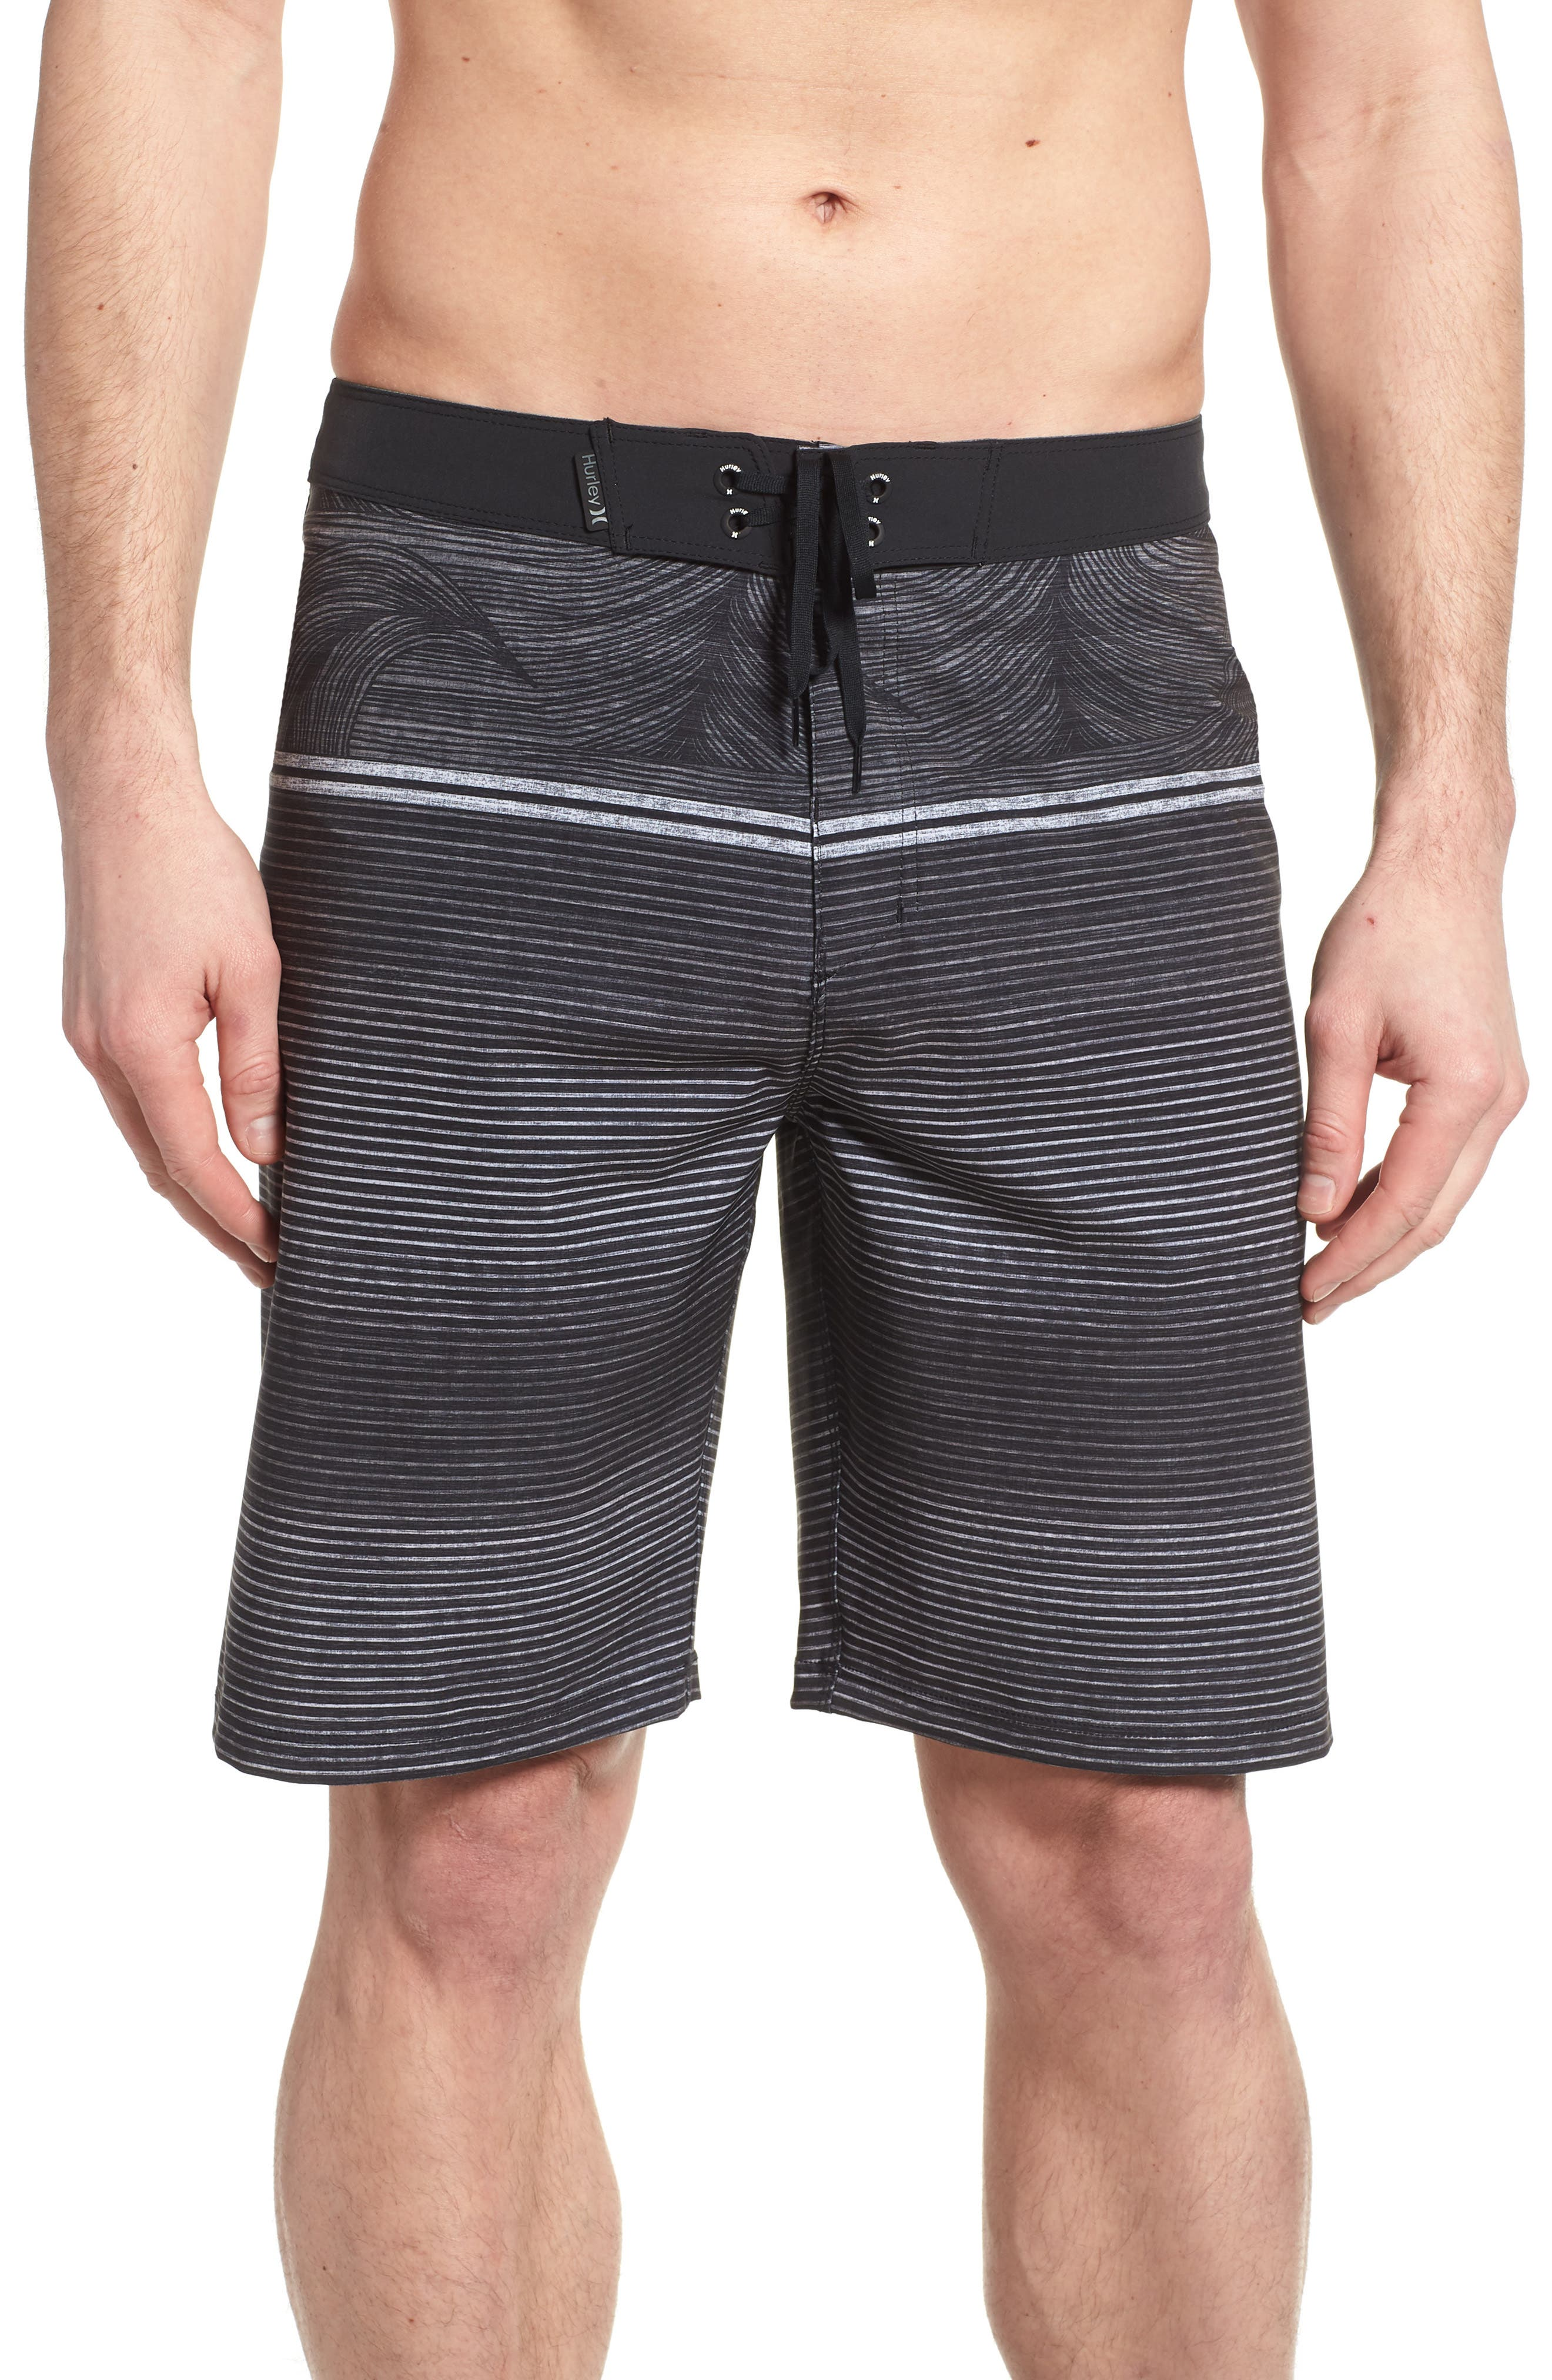 Phantom Sunset Board Shorts,                         Main,                         color, Black